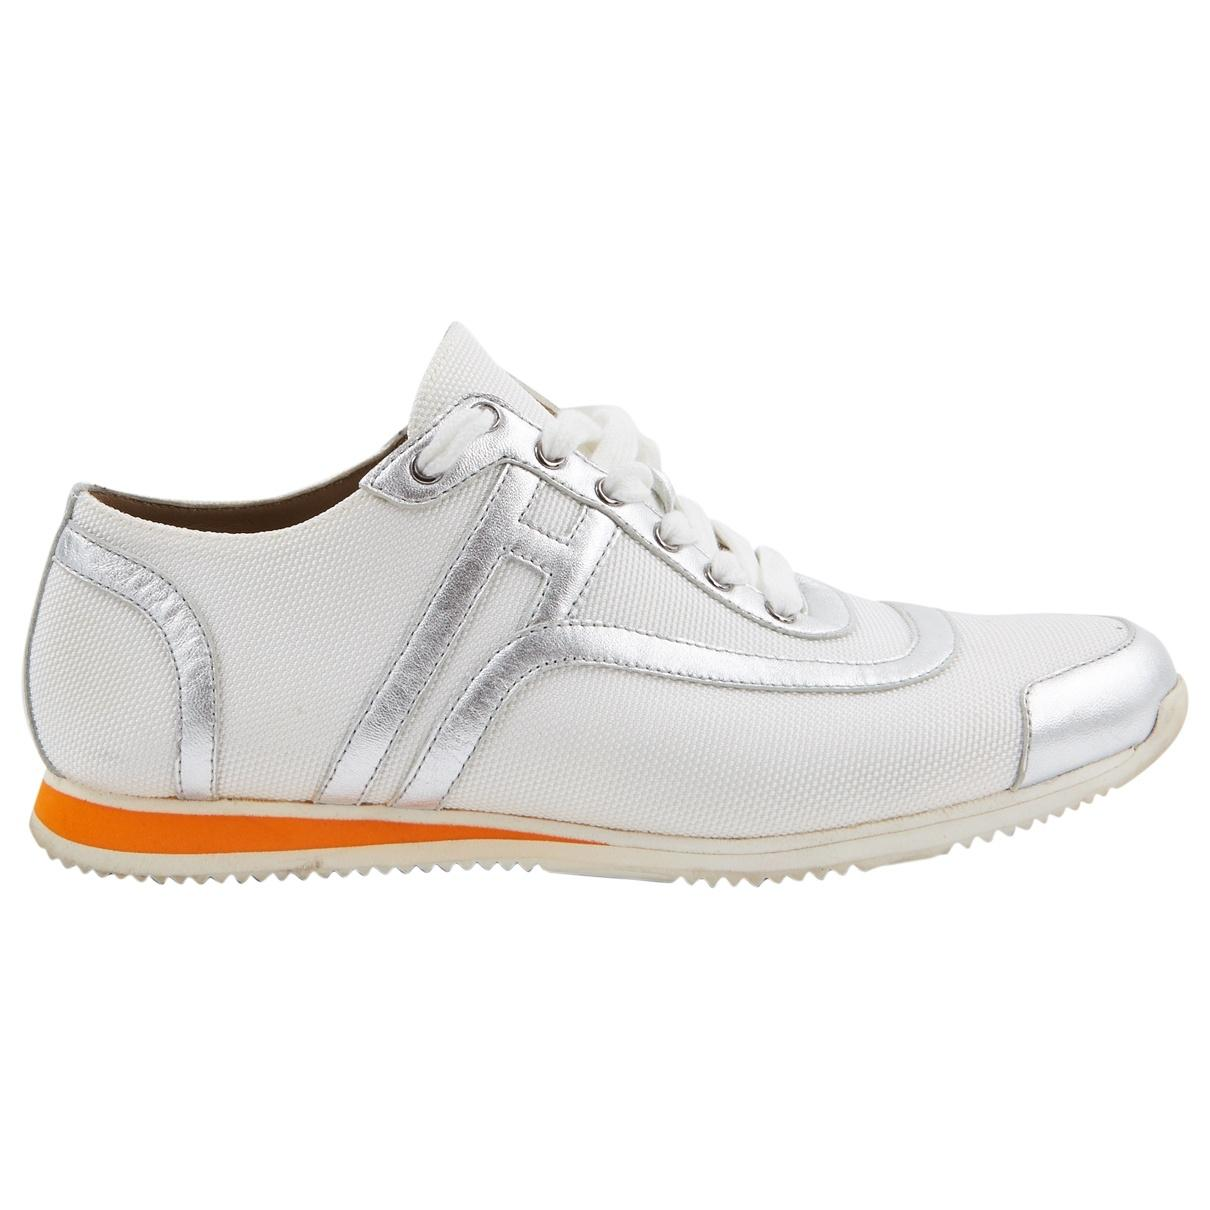 Hermès. Women s White Rubber Trainers.  388 From Vestiaire Collective d77ed0102